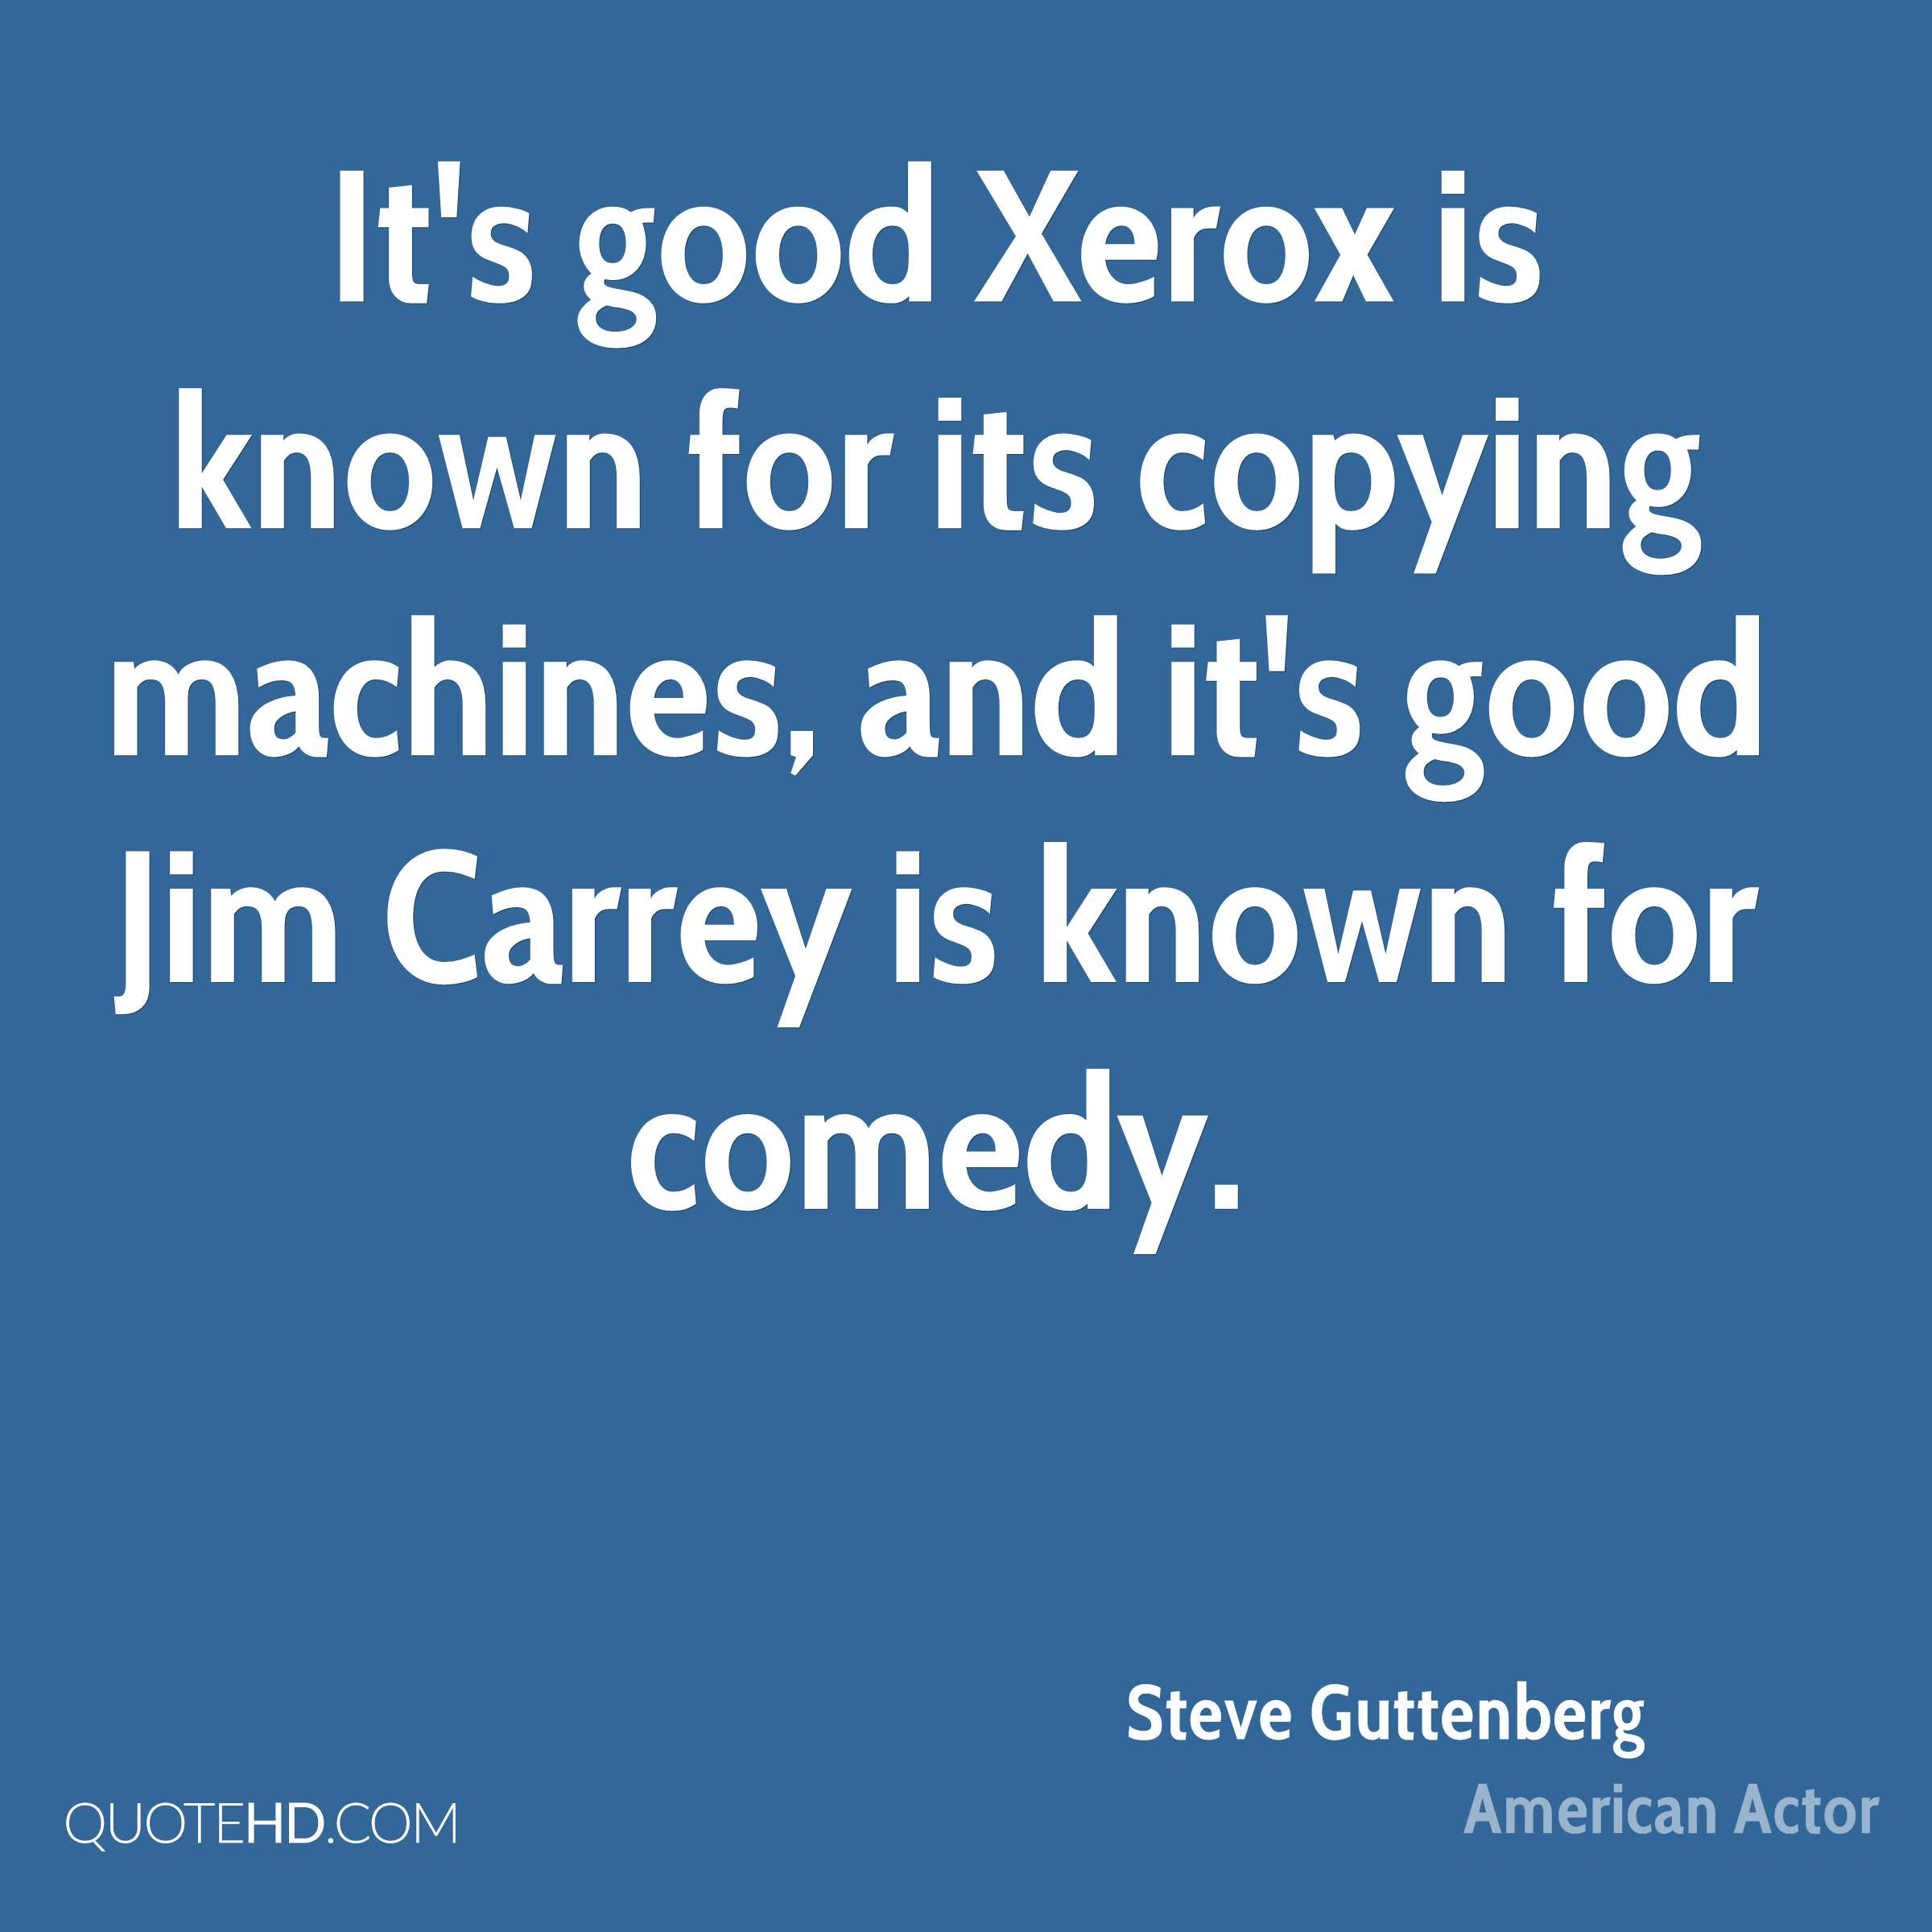 It's good Xerox is known for its copying machines, and it's good Jim Carrey is known for comedy.